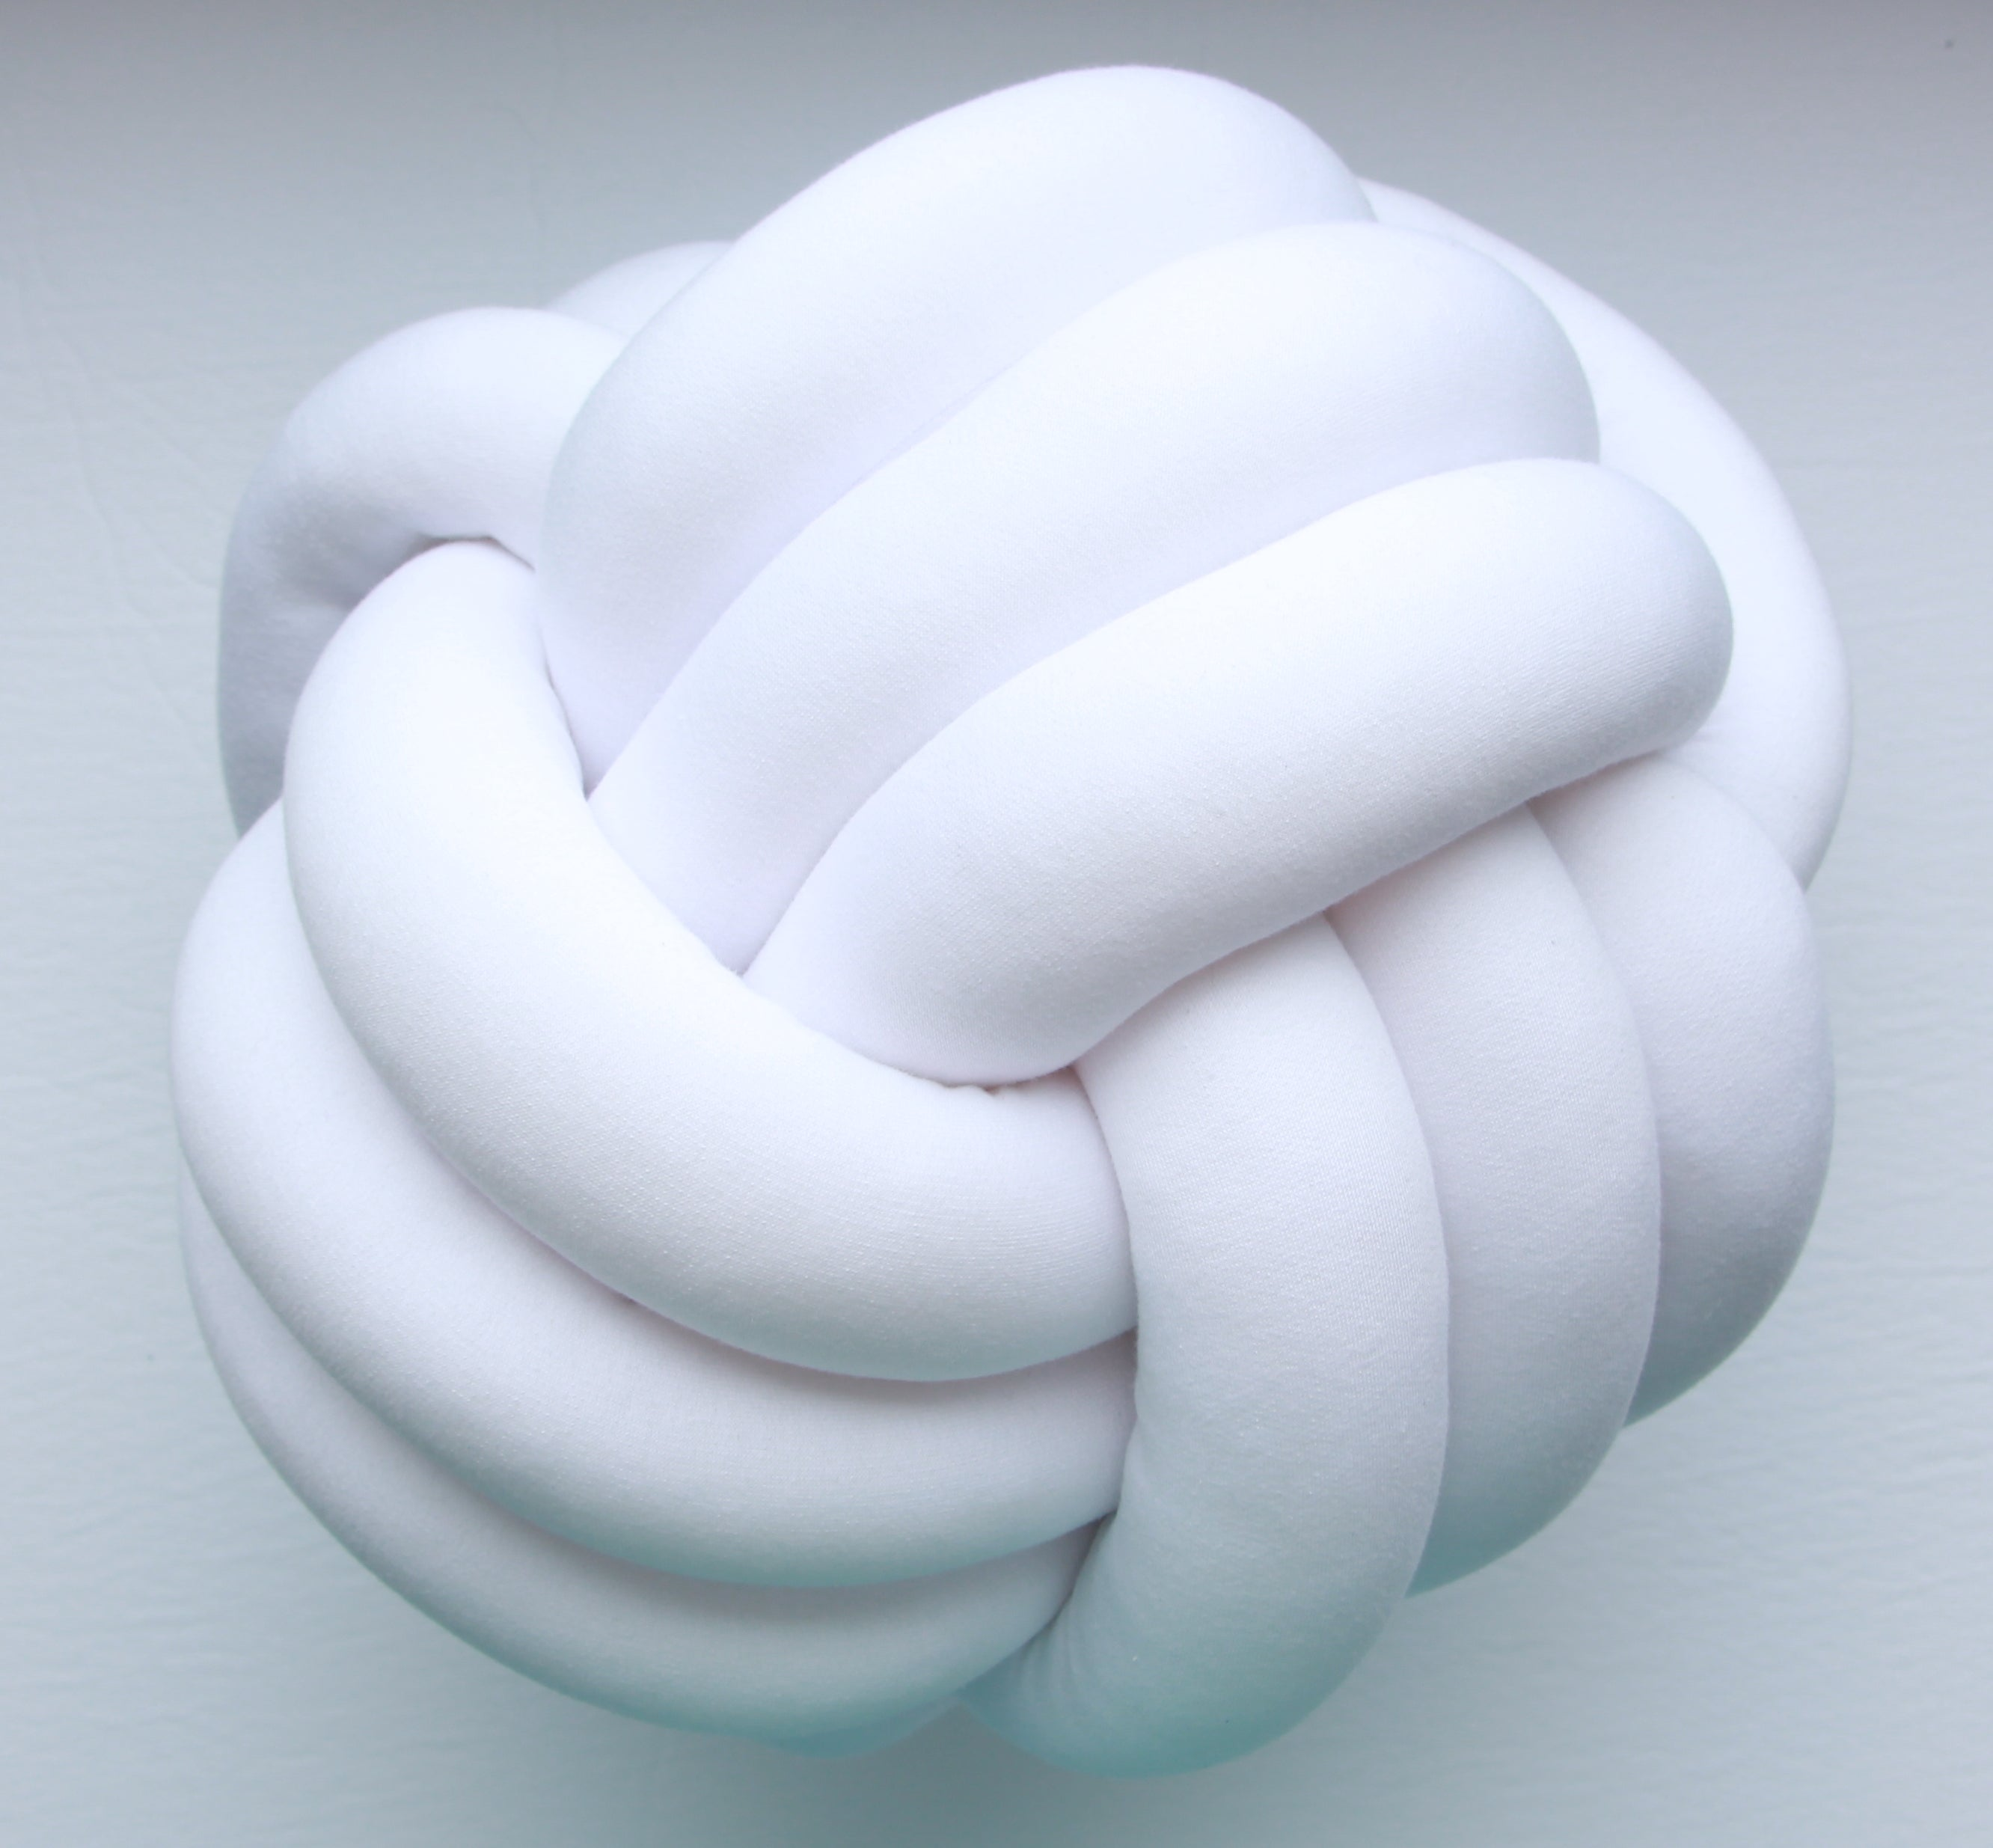 Grande Sphere Knot Pillow - See more Knot Pillows & Cushions at JujuAndJake.com